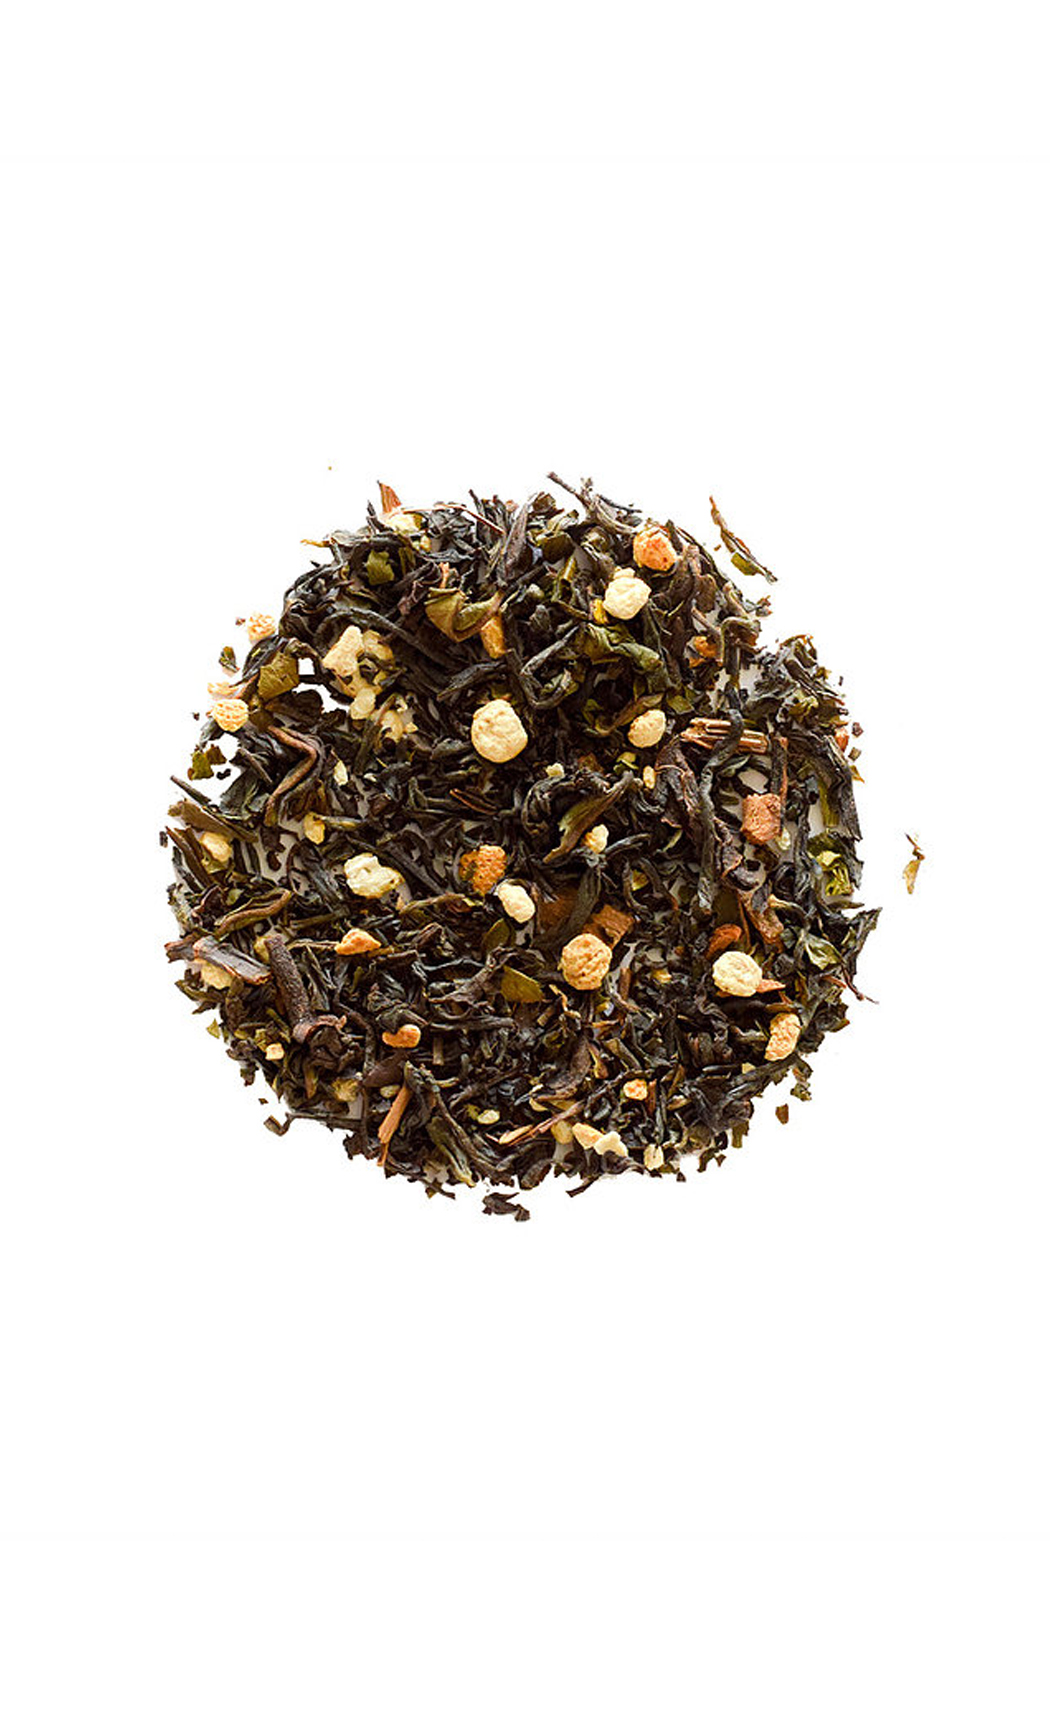 Cinnamon Spiced Black Tea (75gms)